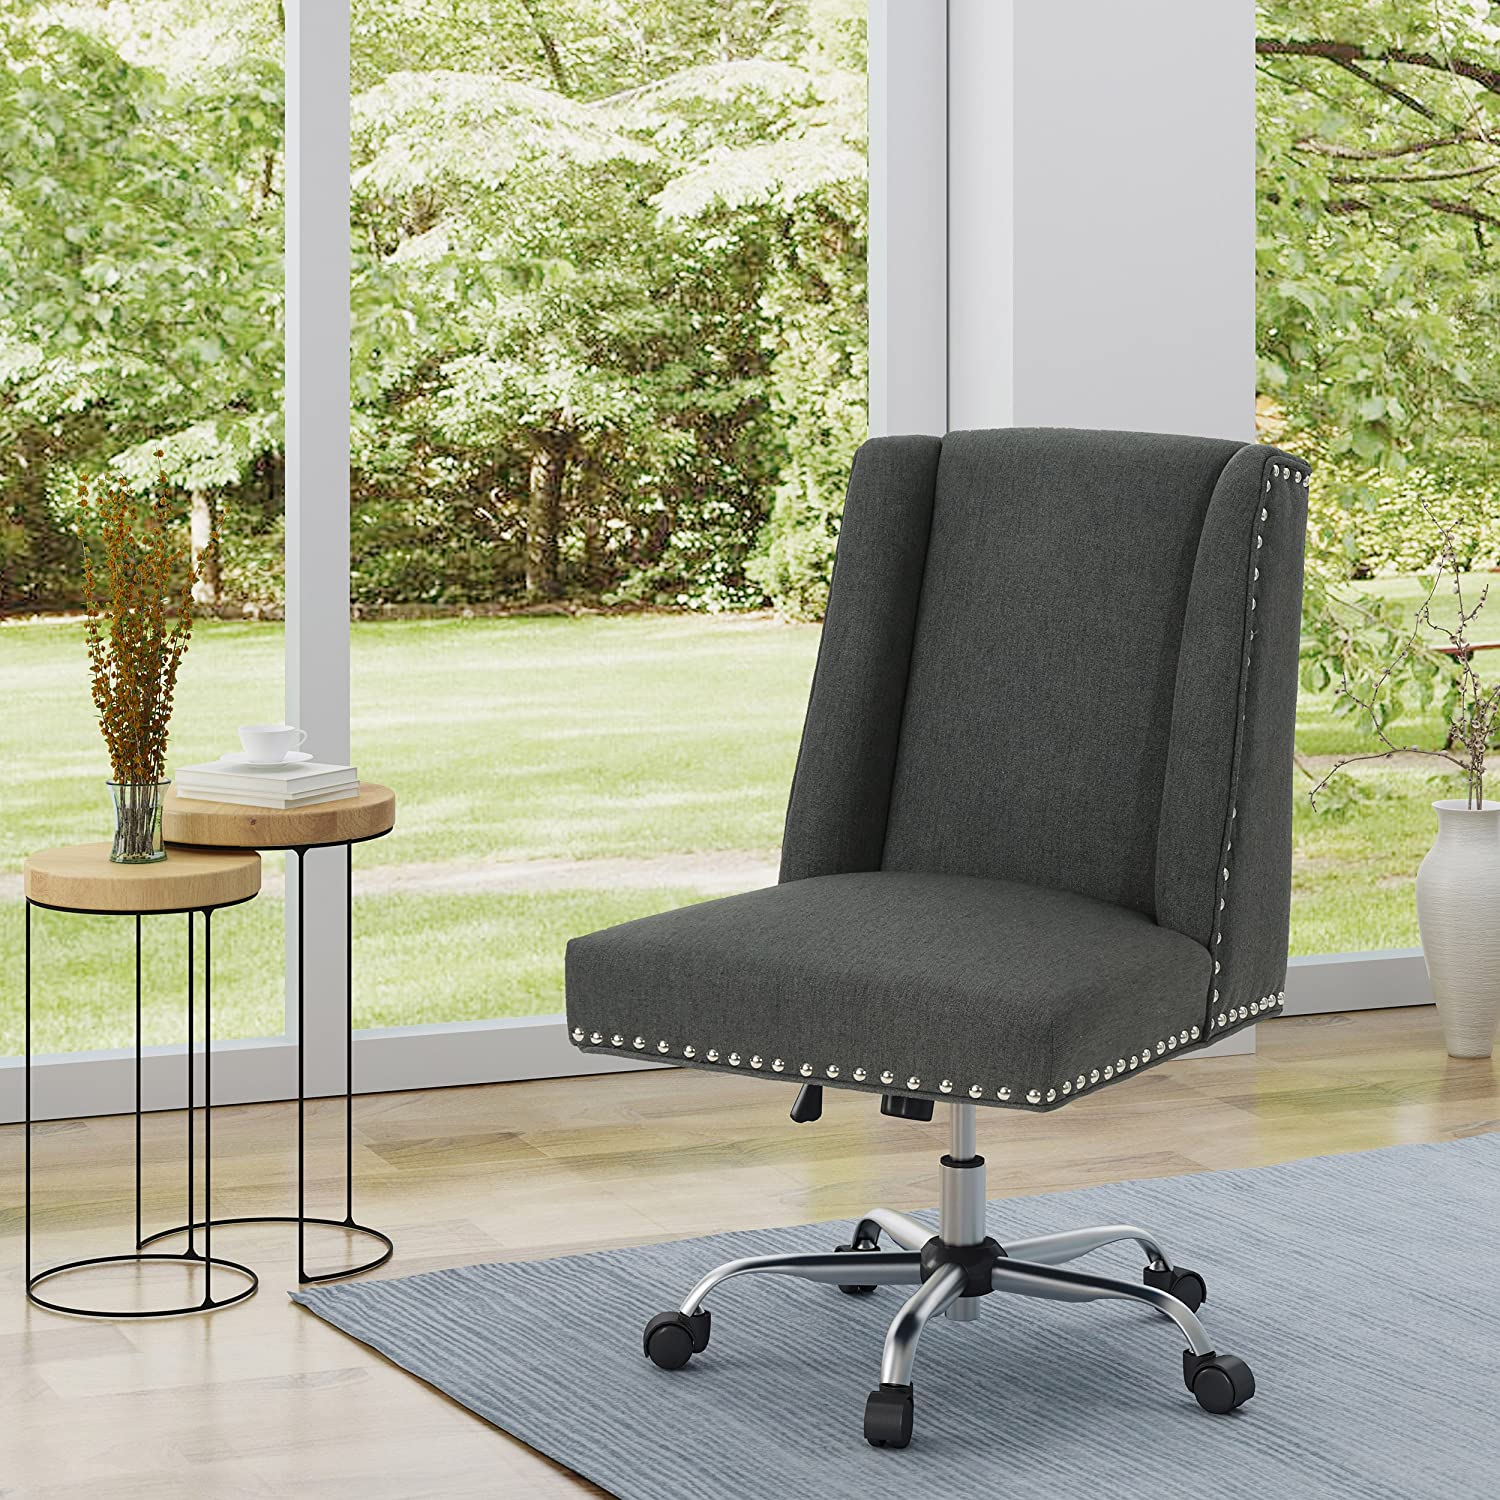 Christopher Knight Home 304854 Quentin Desk Chair, Dark Grey + Chrome